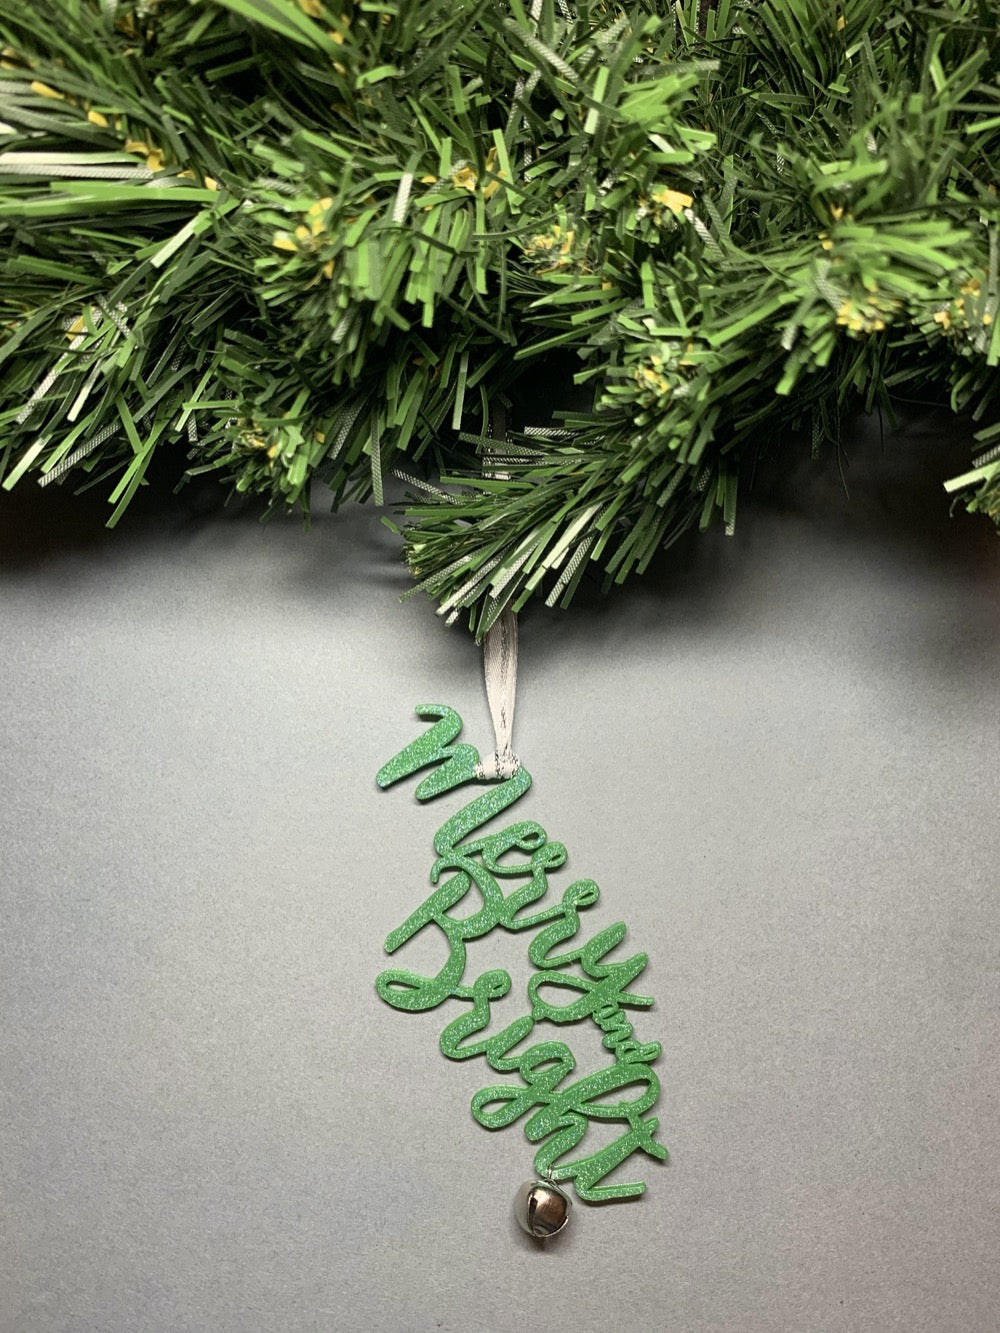 On a grey background and hanging from a green wreath is a 3D printed R+D ornament. It is a cursive text with a jingle bell and covered in glitter to make it shimmer and shine in the light. This ornament reads, Merry and Bright.